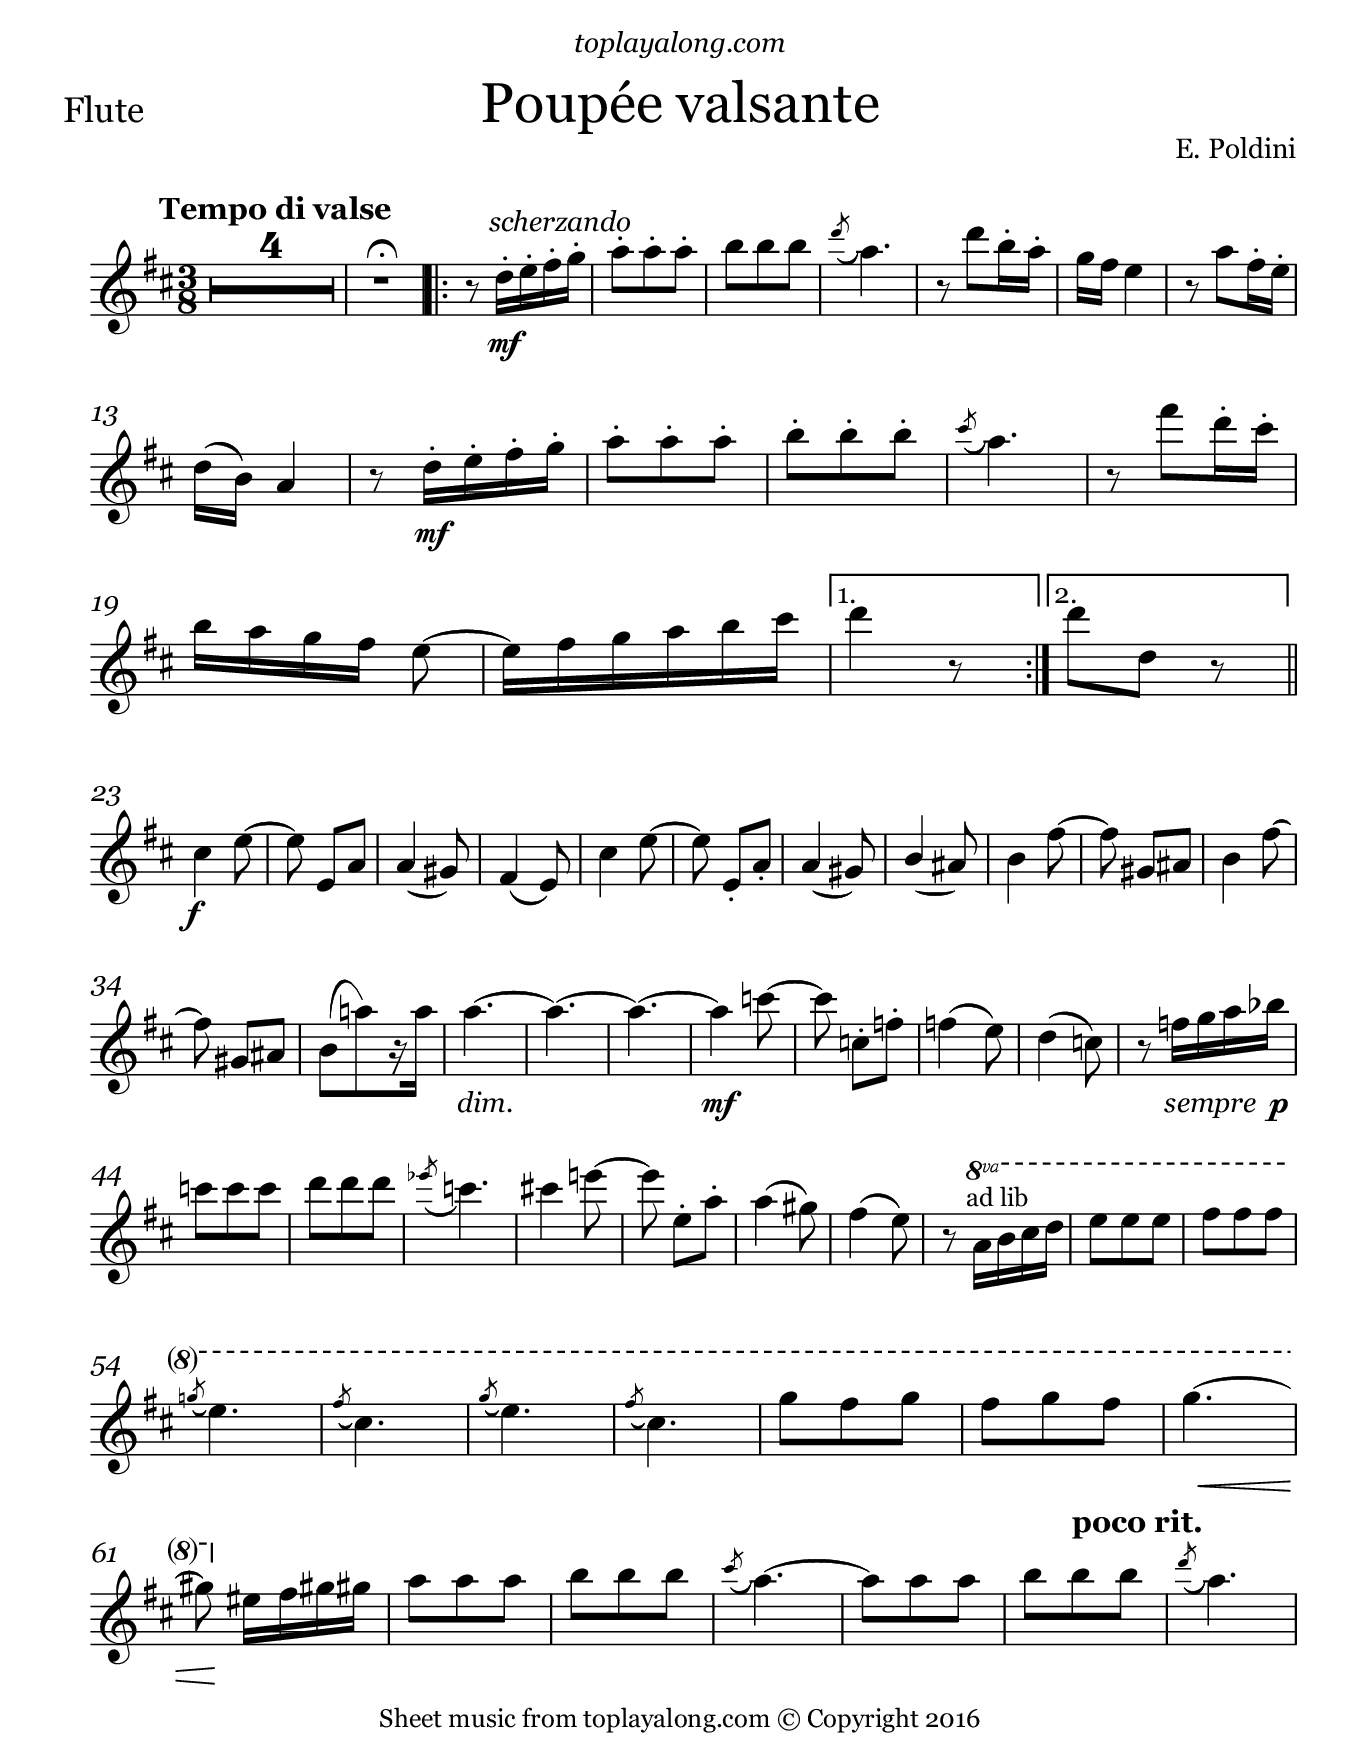 Poupée valsante by Poldini. Sheet music for Flute, page 1.